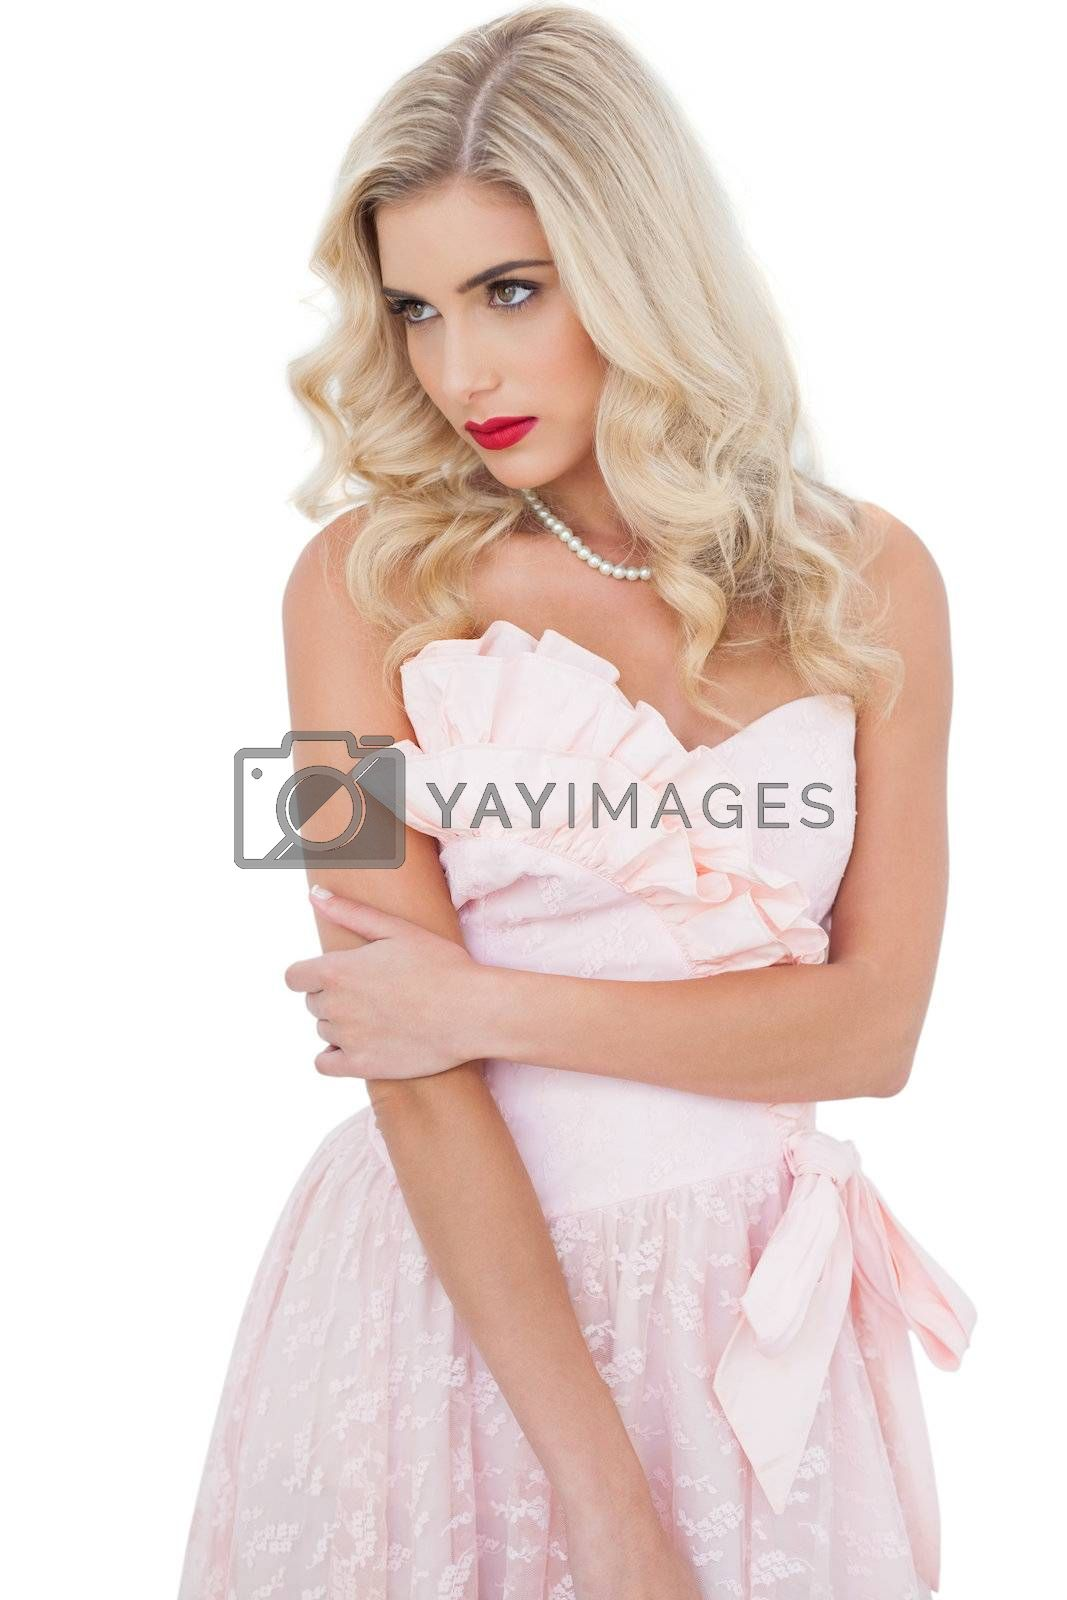 Concentrated blonde model in pink dress posing holding her arm by Wavebreakmedia